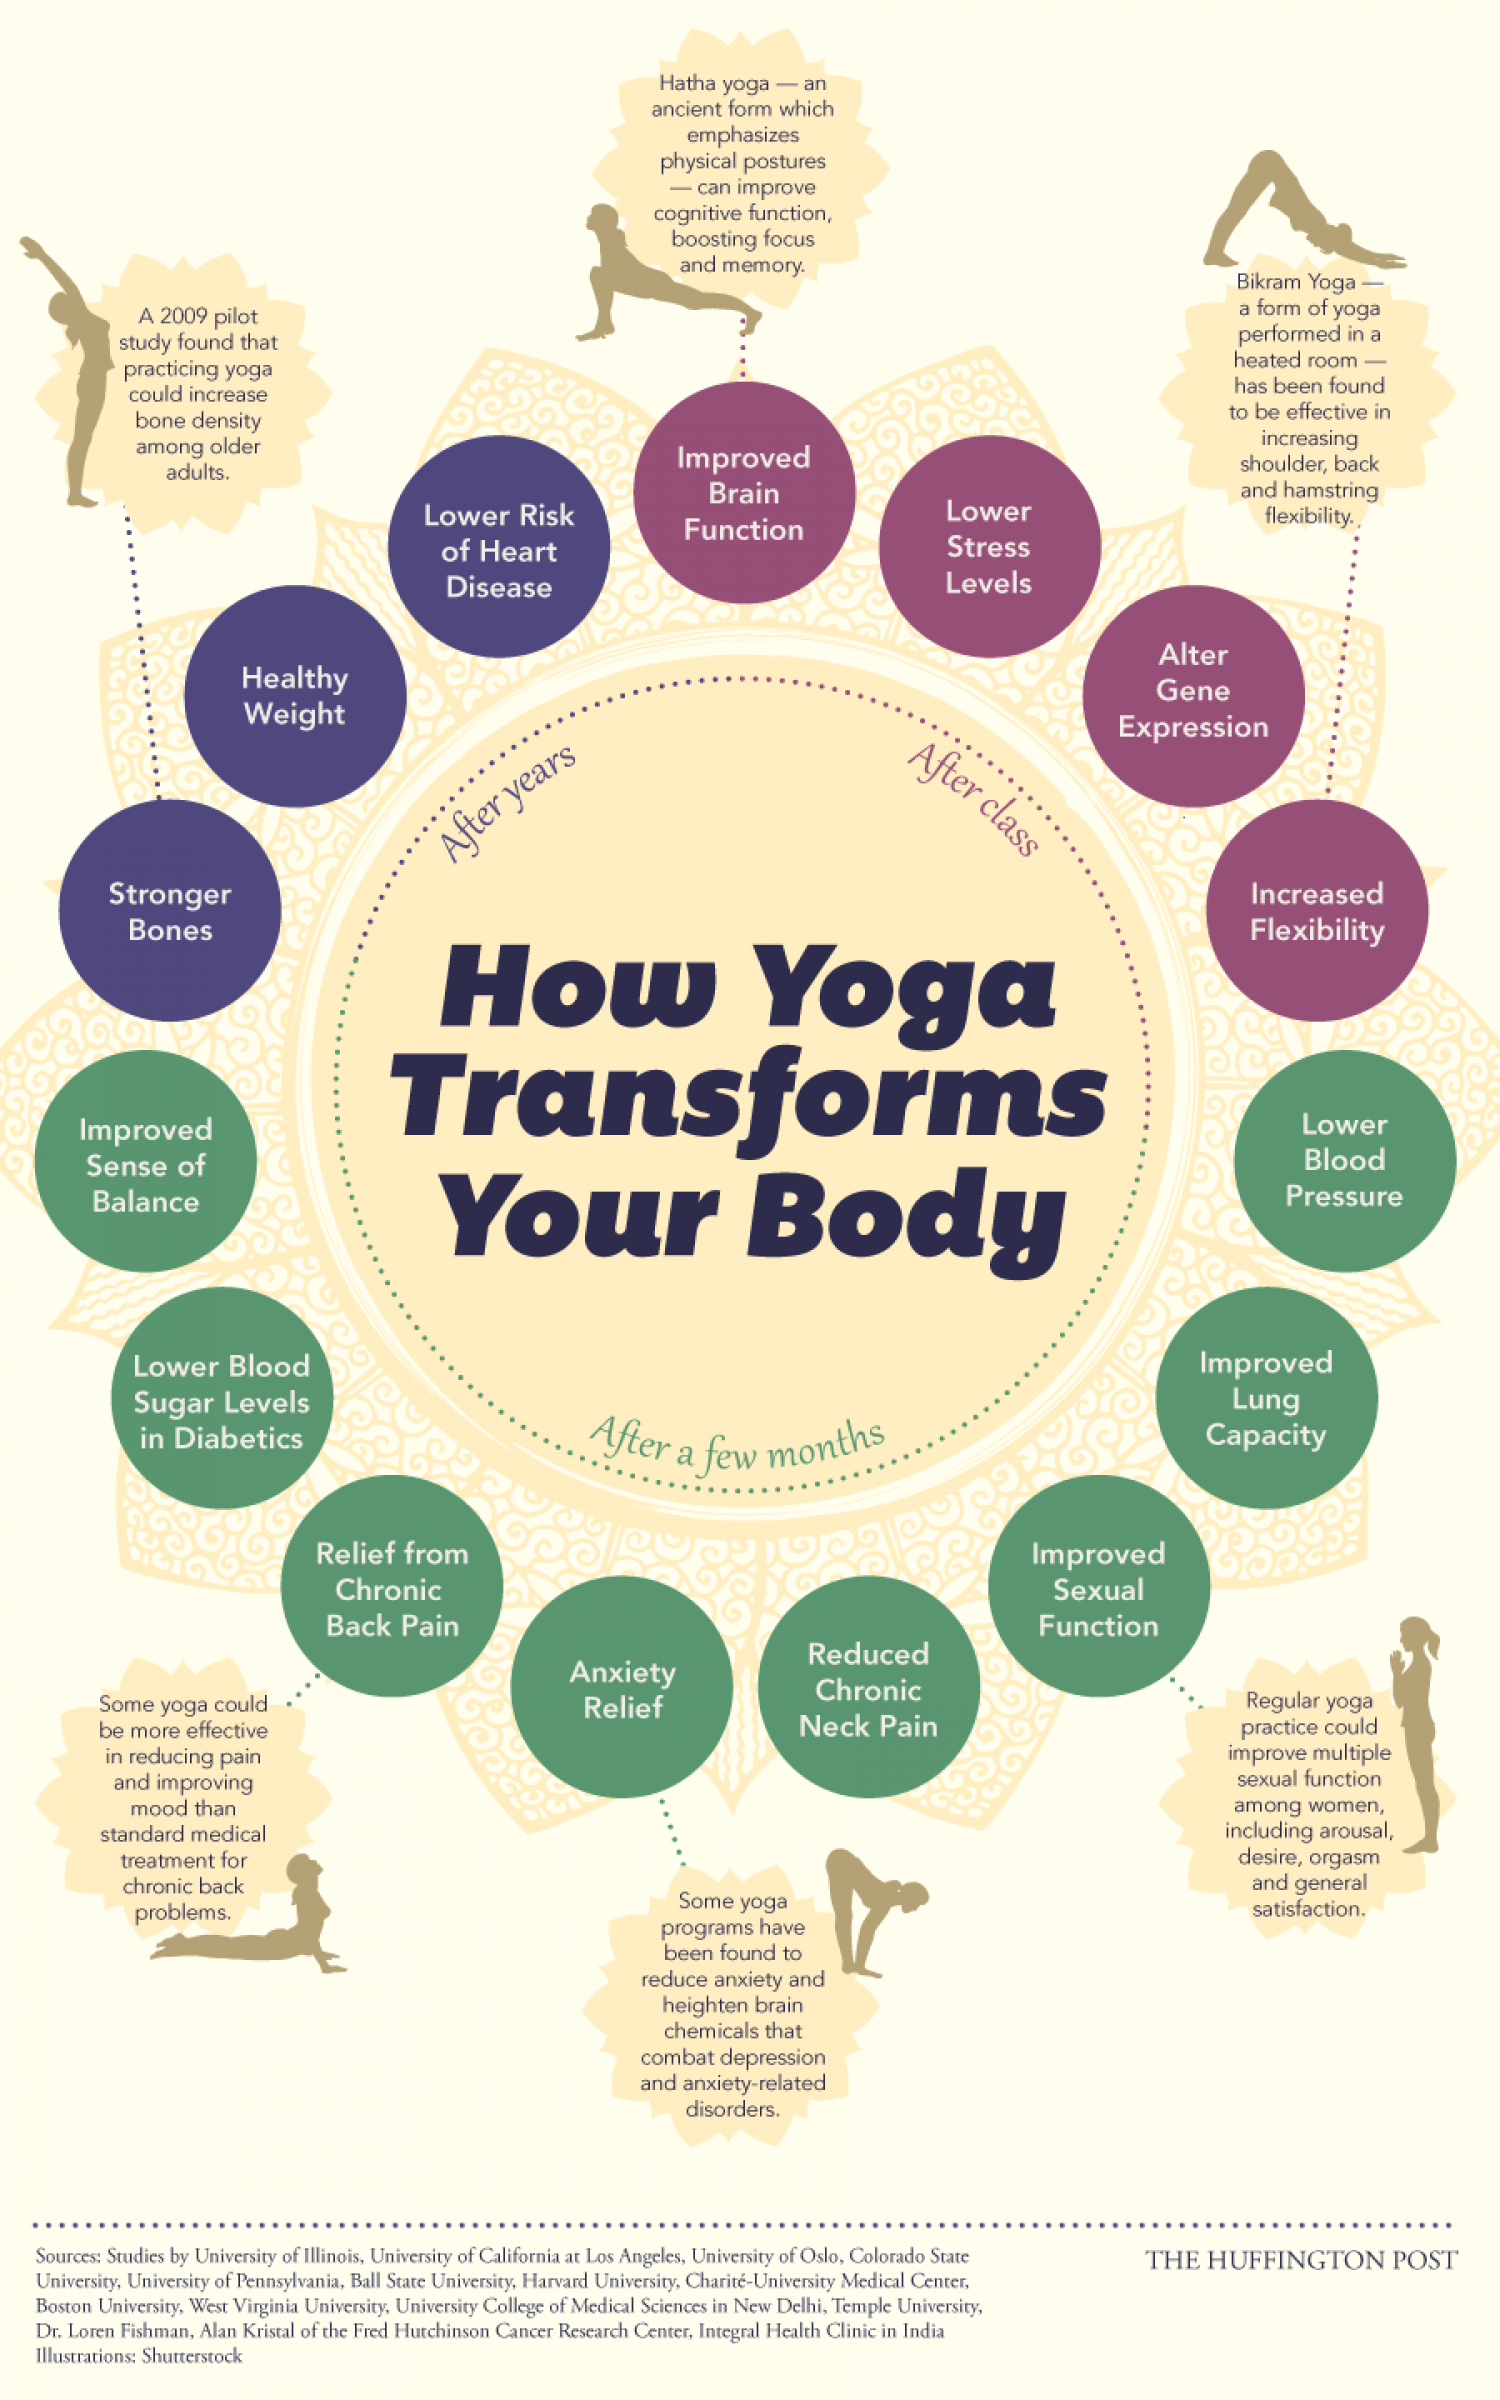 How Yoga Transforms Your Body Infographic